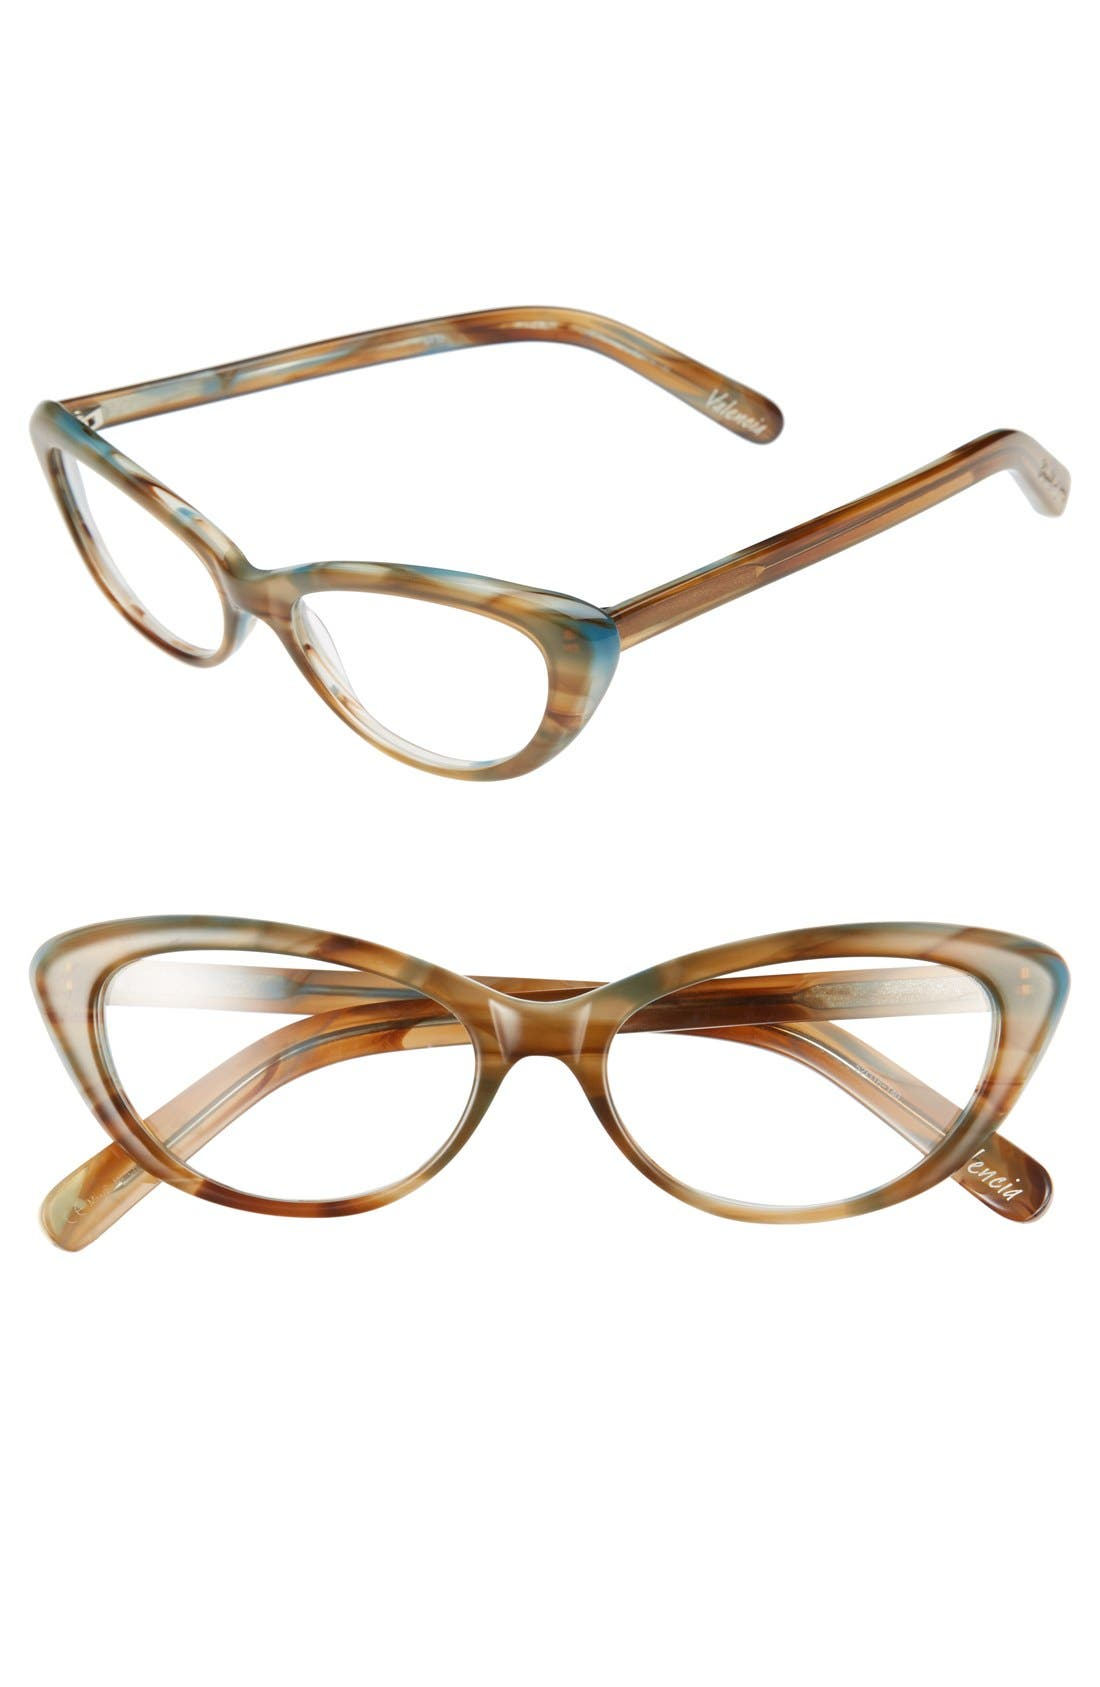 Main Image - Elizabeth and James 'Valencia' 52mm Optical Glasses